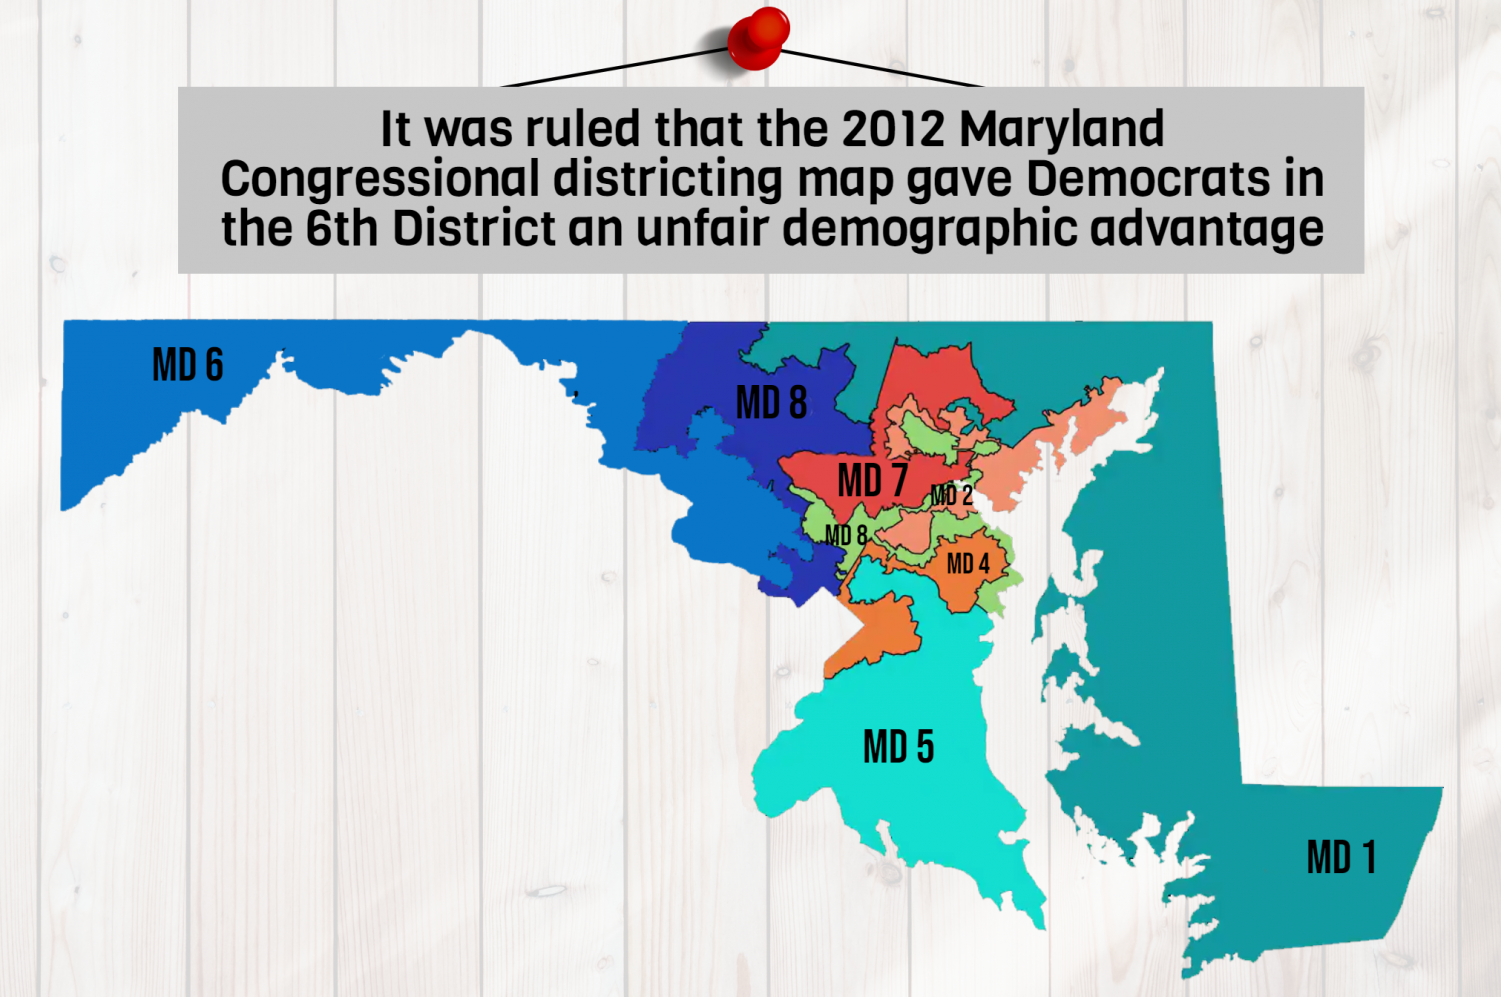 A panel of three federal judges ruled Nov. 7 that the 2012 Maryland Congressional districting map gave Democrats in the 6th District an unfair advantage in the 2018 midterms. Under the judges' ruling, Maryland lawmakers must propose new boundaries in time for the 2020 elections.